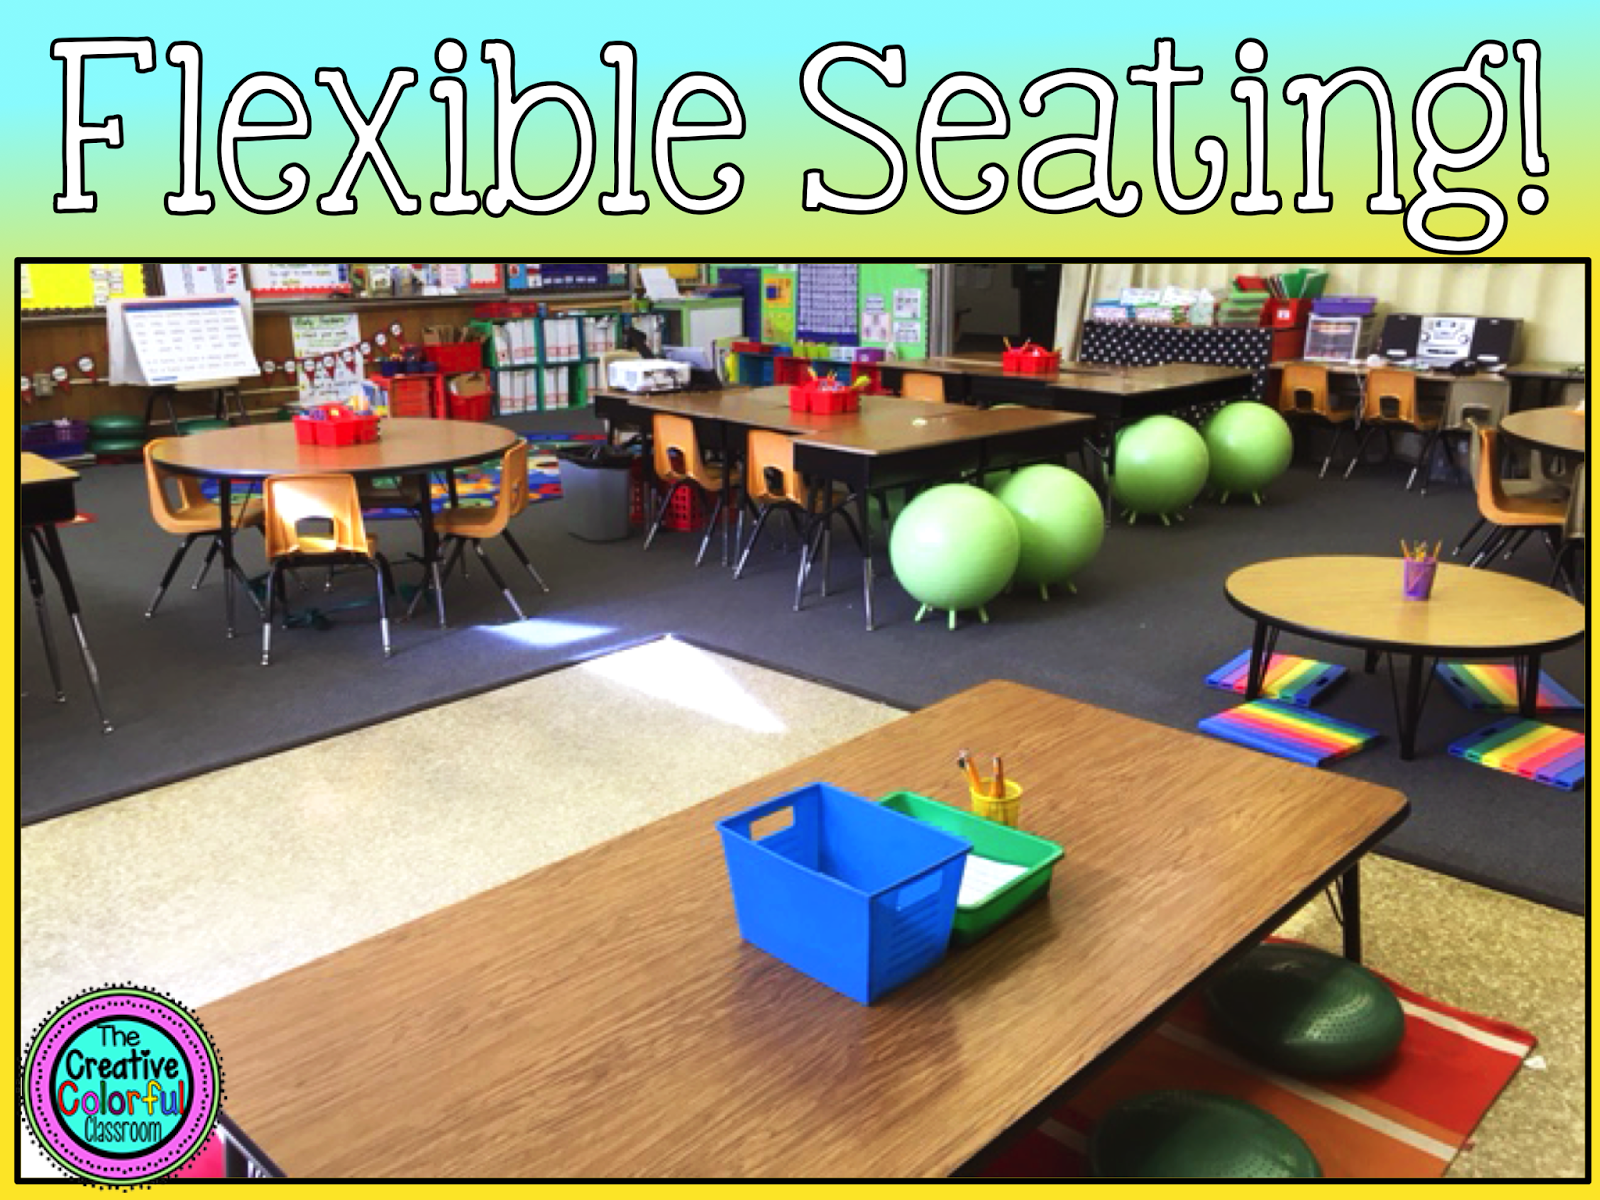 Innovative Elementary Classroom Ideas ~ The creative colorful classroom flexible seating